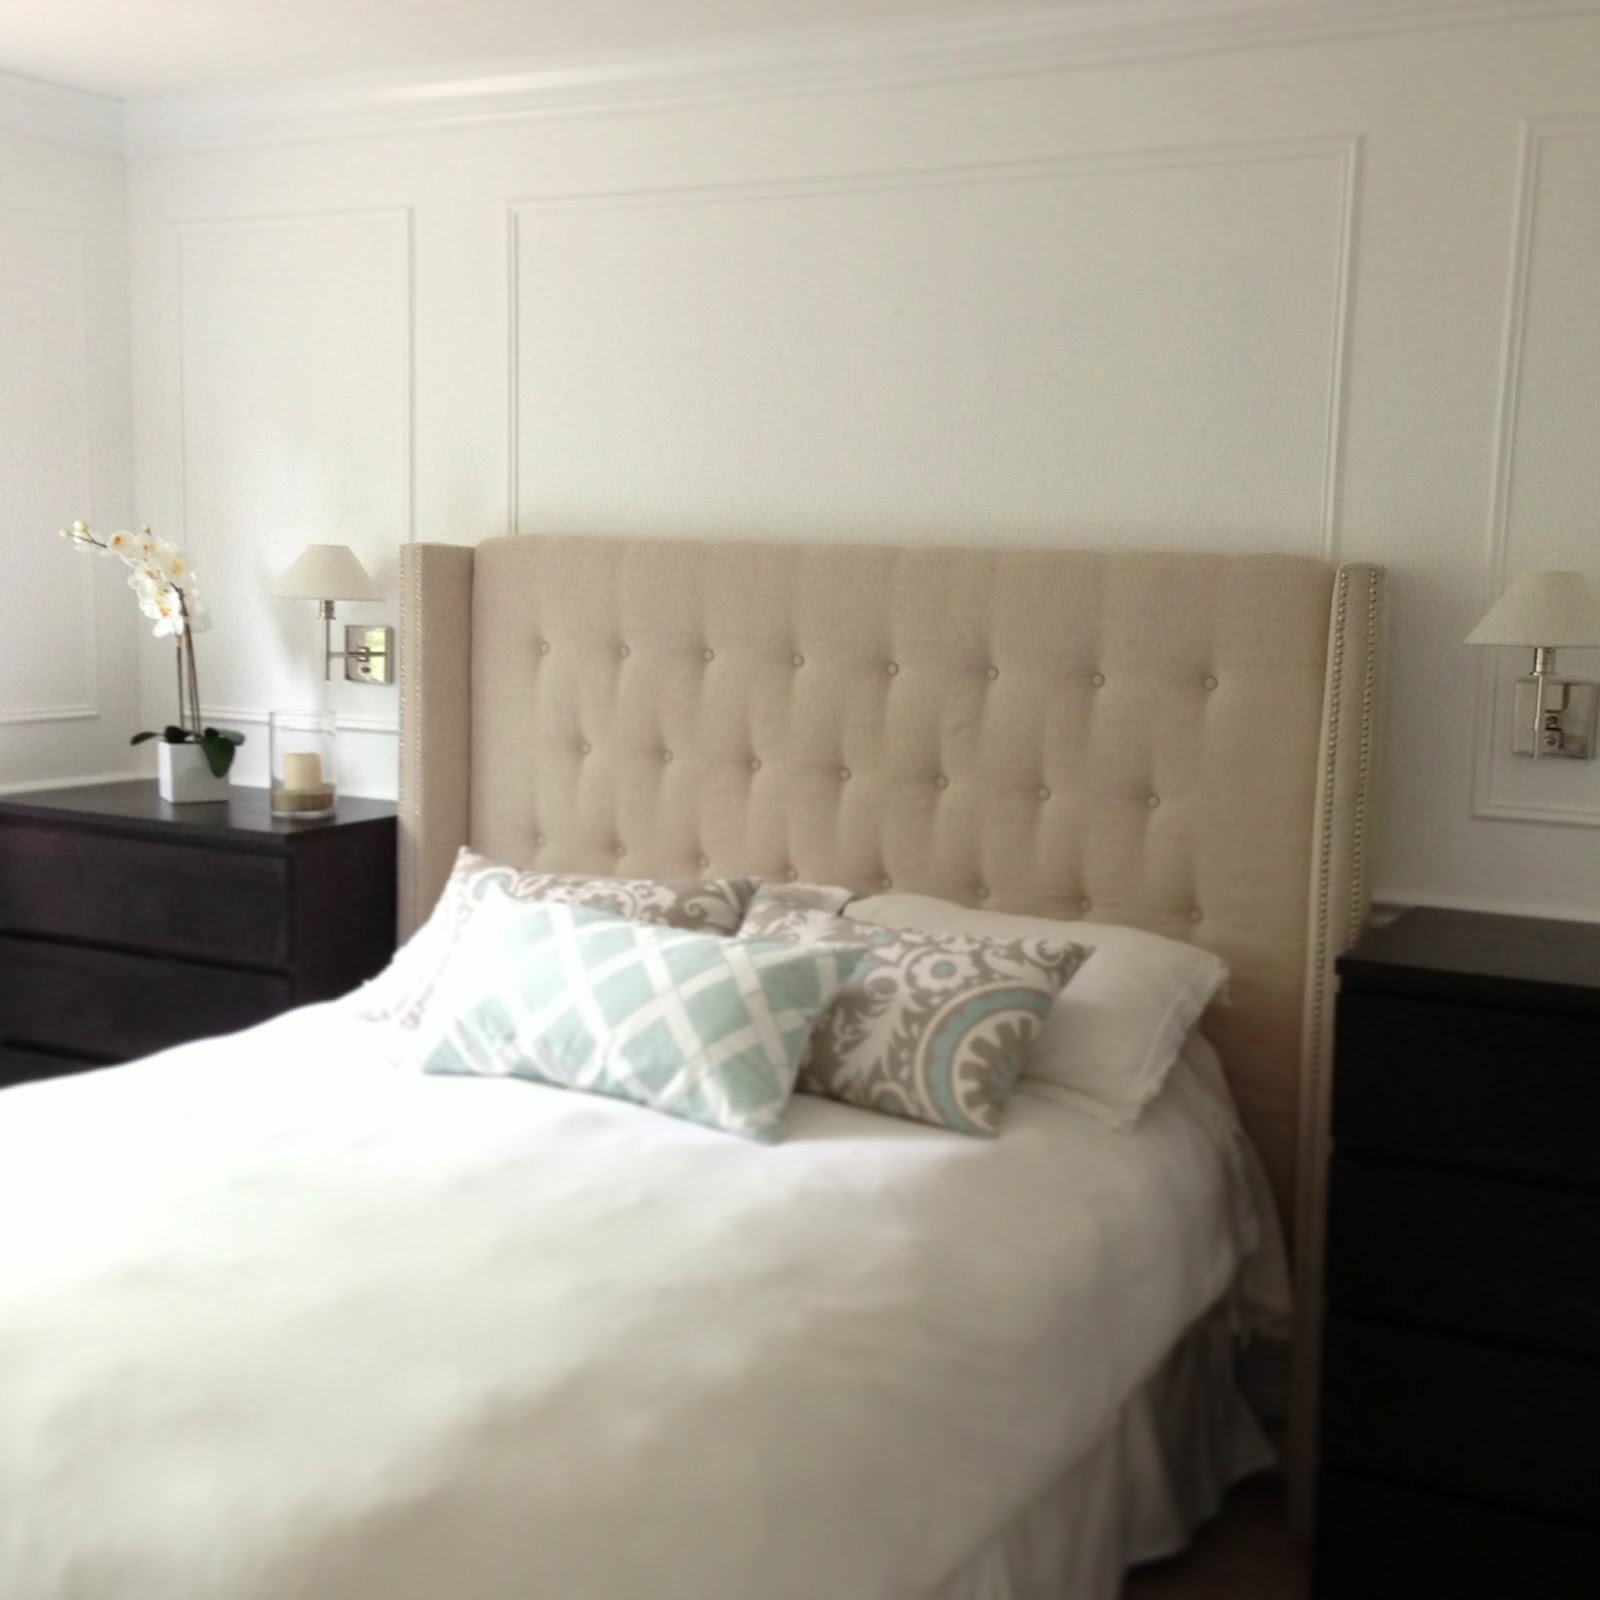 Design Upholstered Headboards Diy money hip mamas diy upholstered headboard with nailhead detailed arms